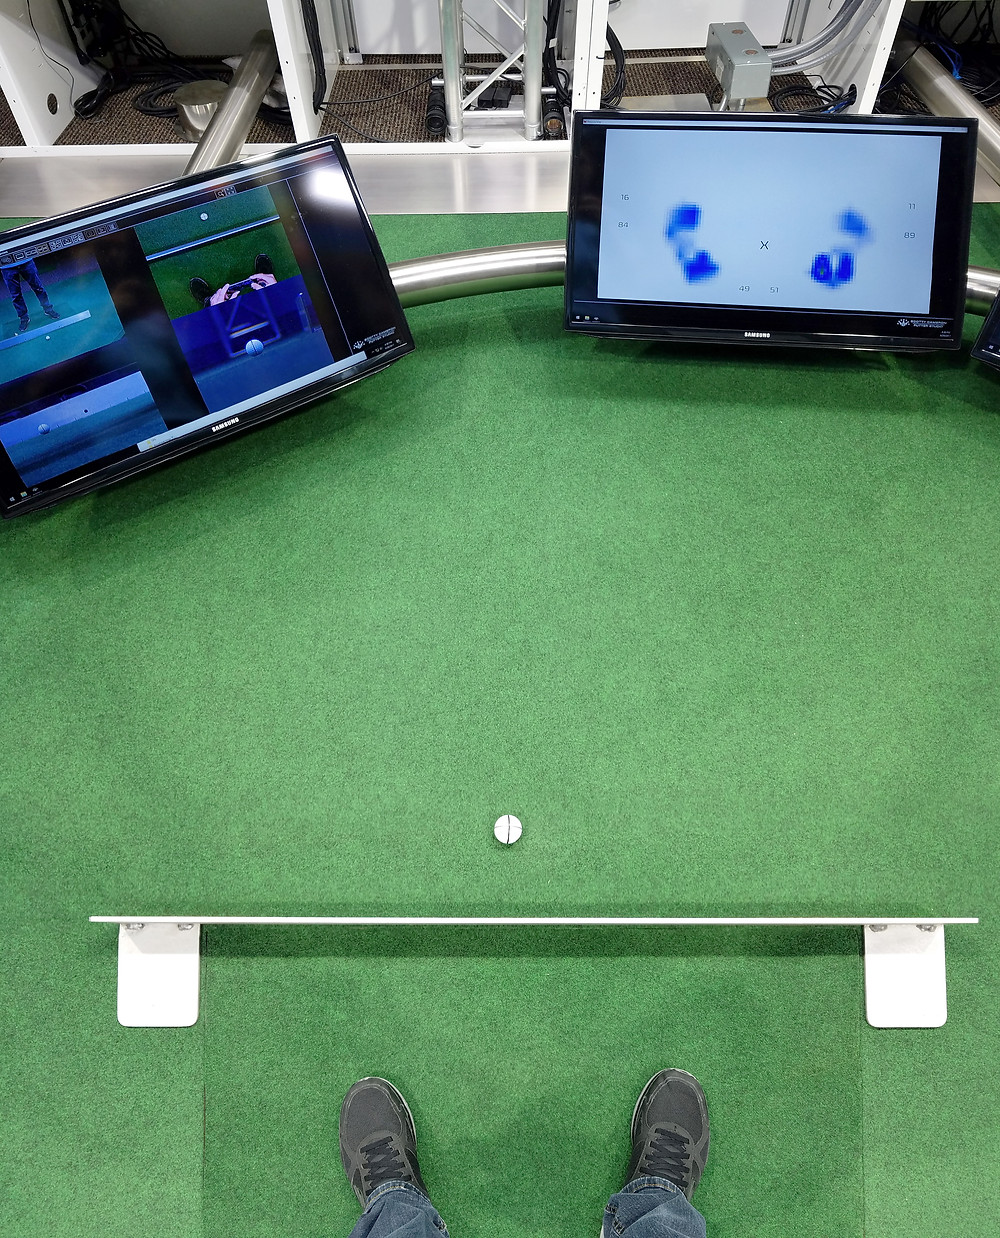 Cyth Seamlessly Synchronizes 10 High Speed Cameras to Improve Golfer Performance